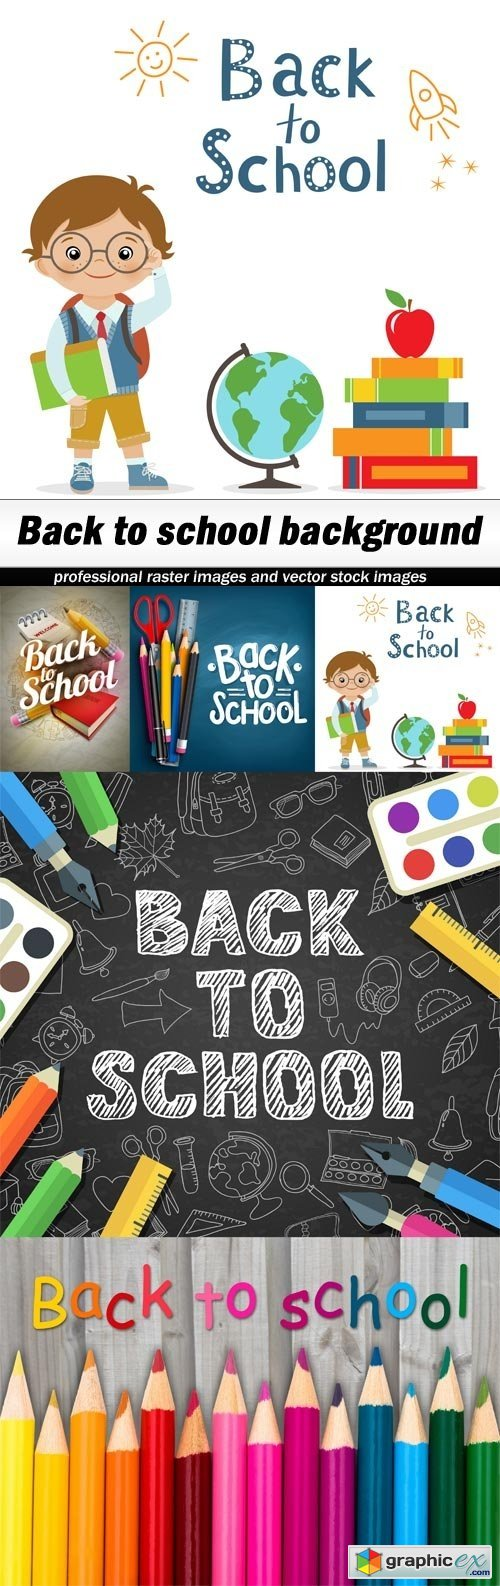 Back to school background - 5 UHQ JPEG